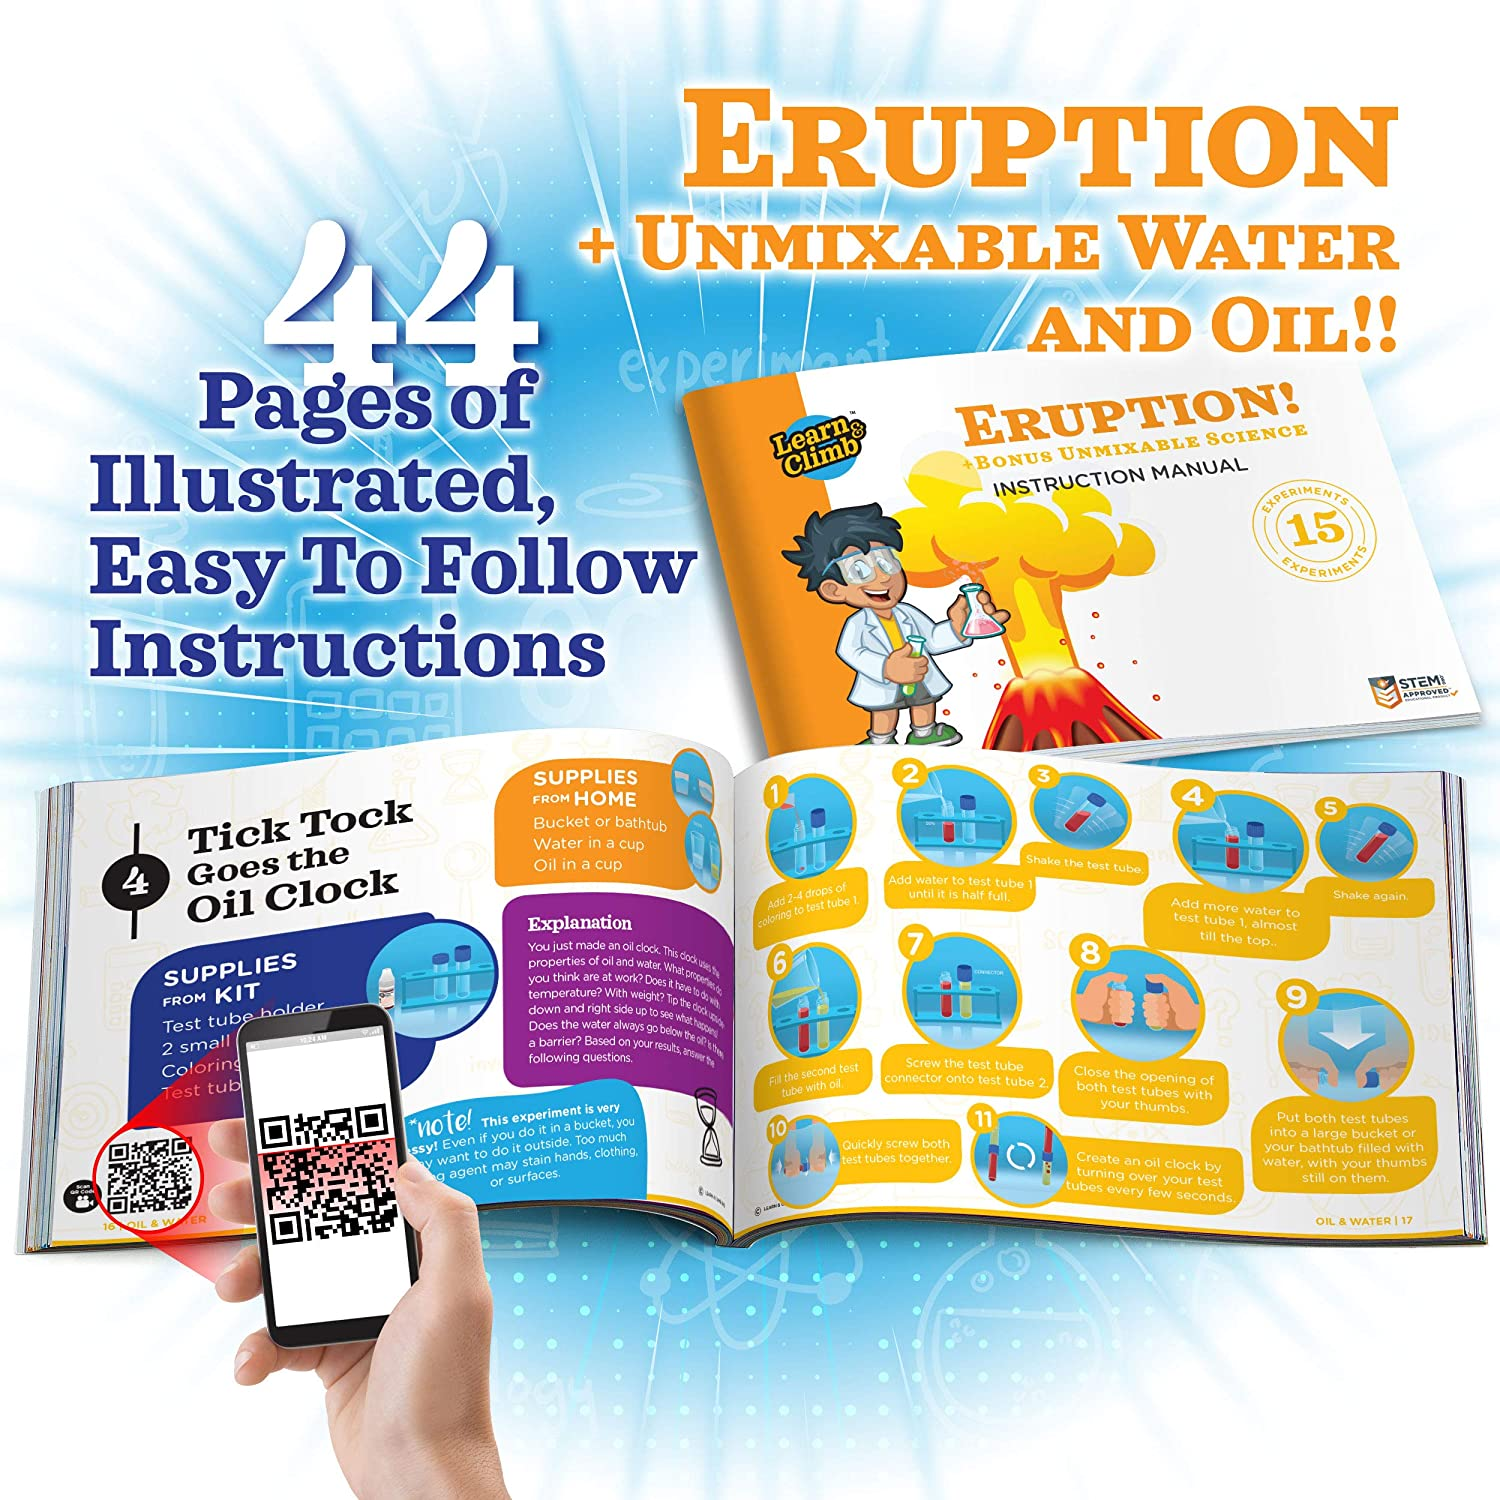 Amazon.com: Exploding Science Experiments Kit for kids - 8 Volcano  Chemistry Eruption Science Projects in Set. Everything Included +  Instruction Manual: ...